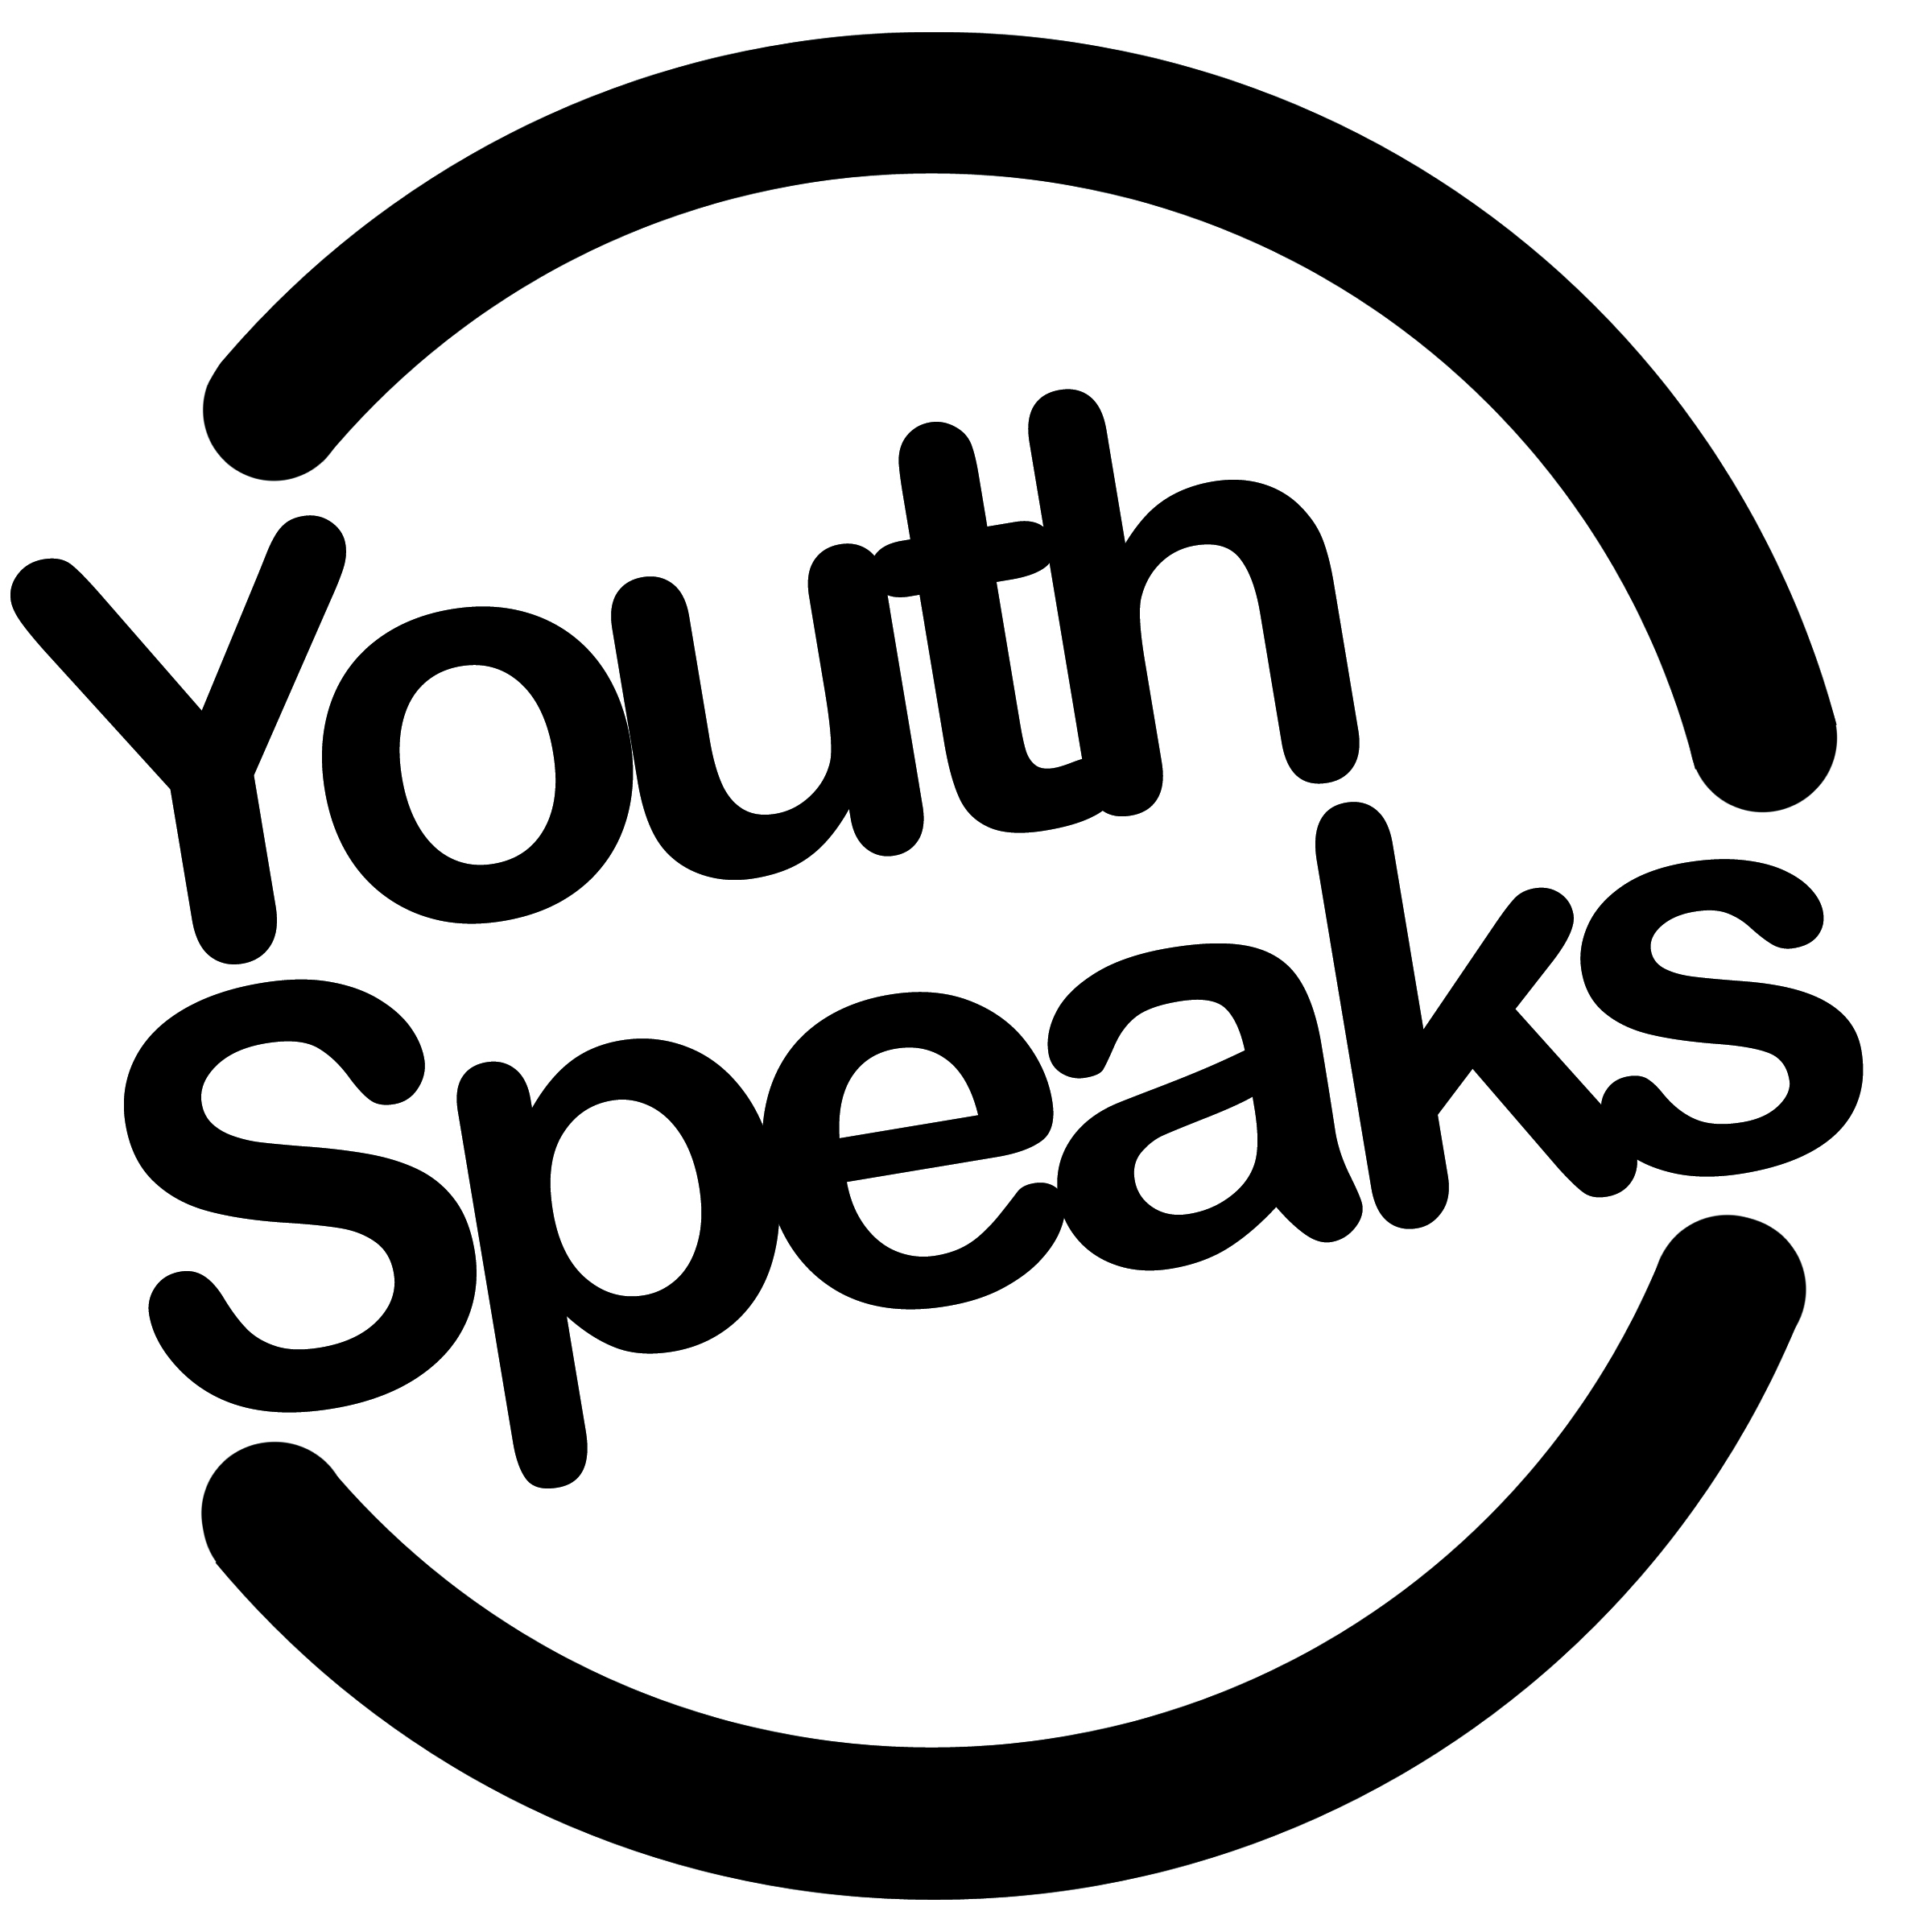 Youth Speaks (San Francisco), San Francisco, CA - Localwise business profile picture